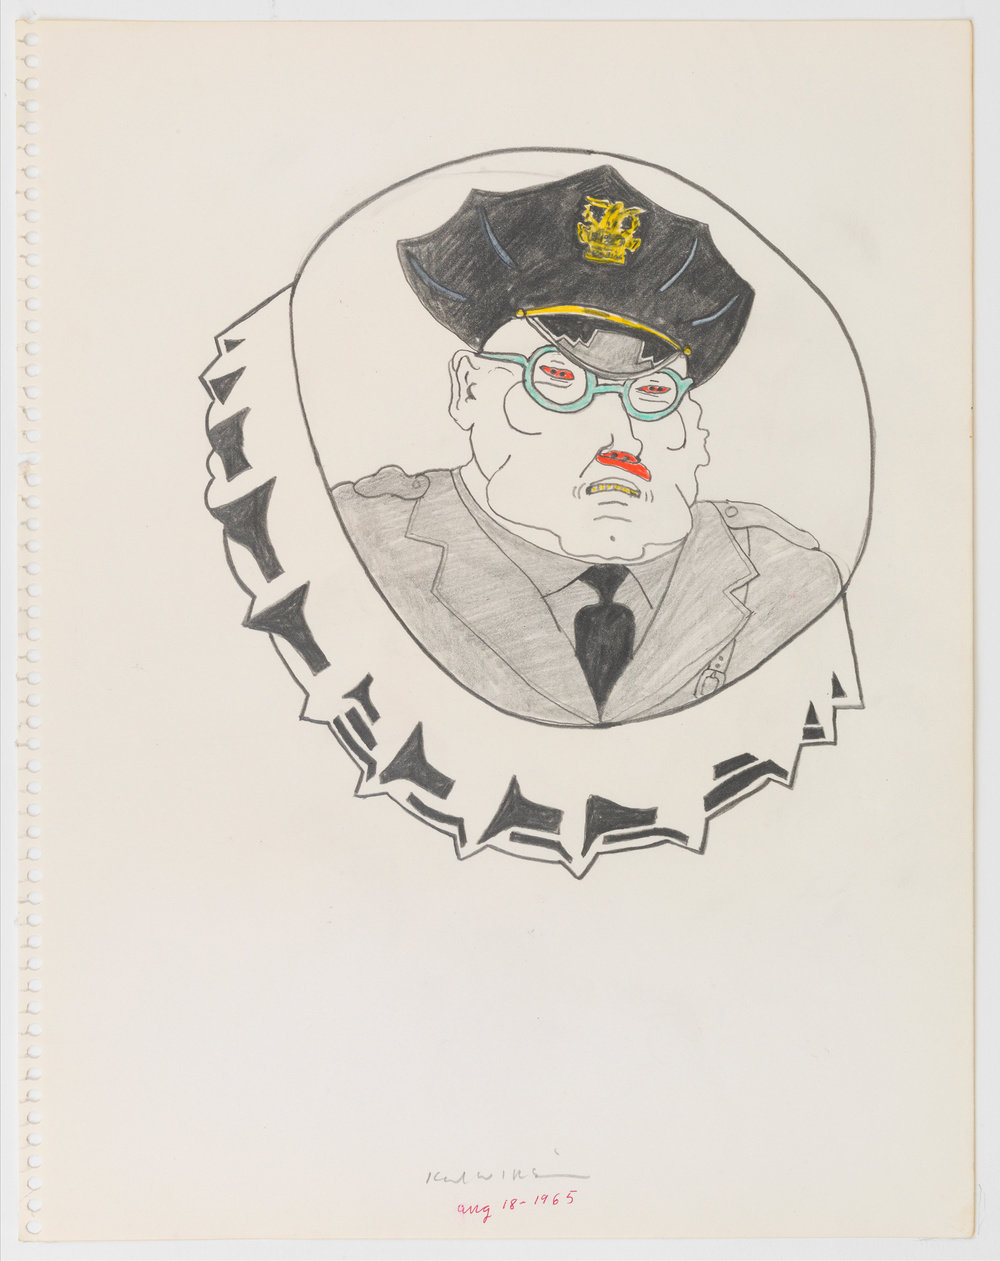 A graphite and color pencil on paper drawing by Karl Wirsum that depicts a male police officer on the face of a bottle cap.